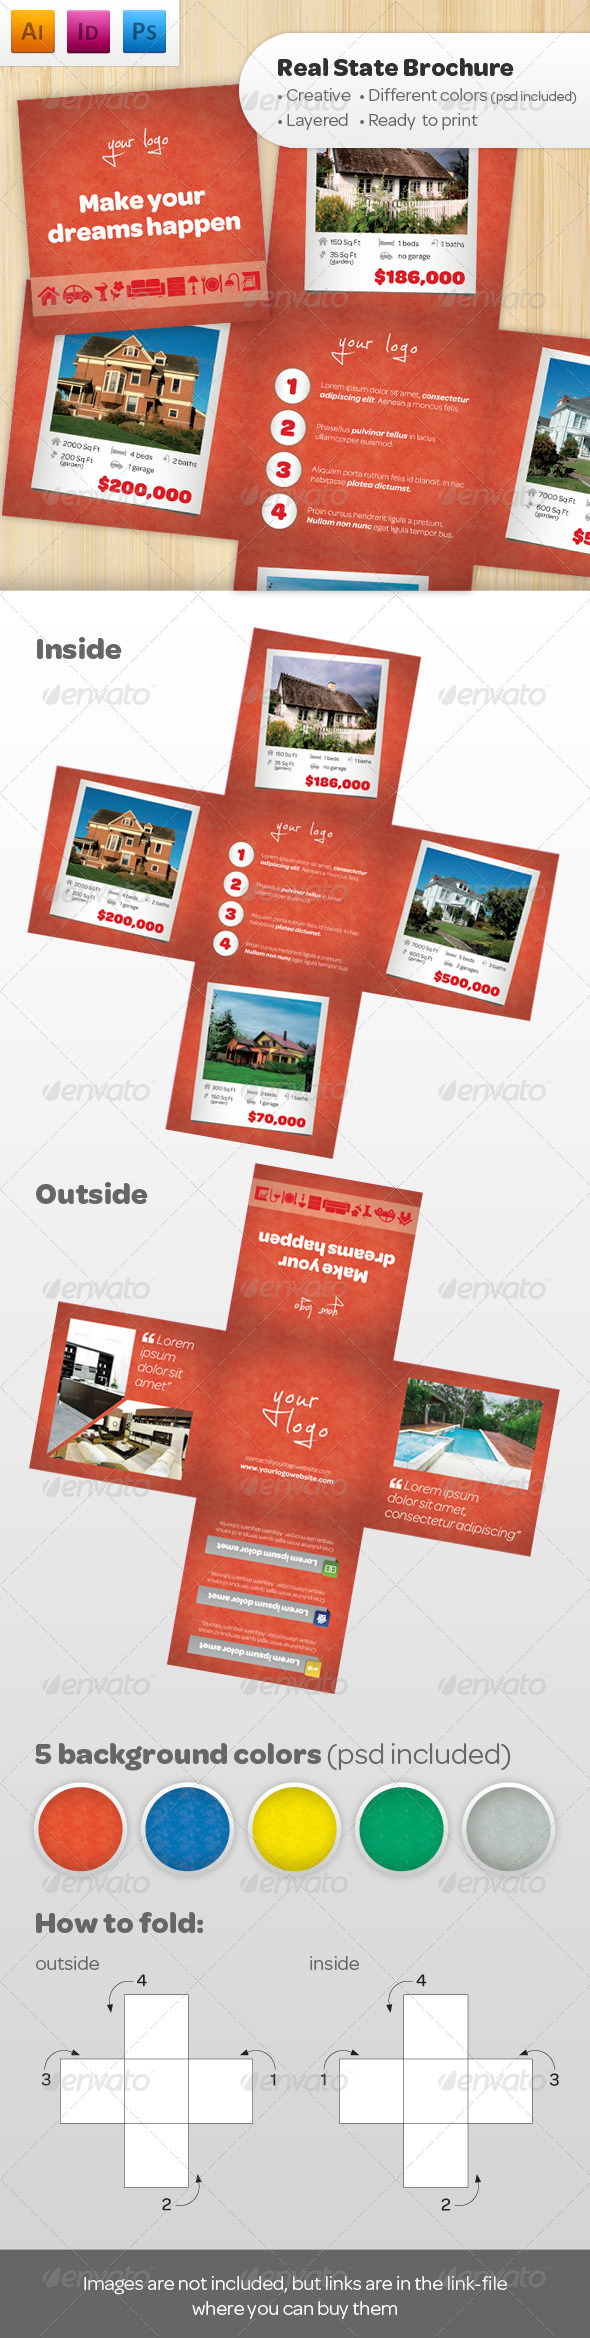 Real State Brochure